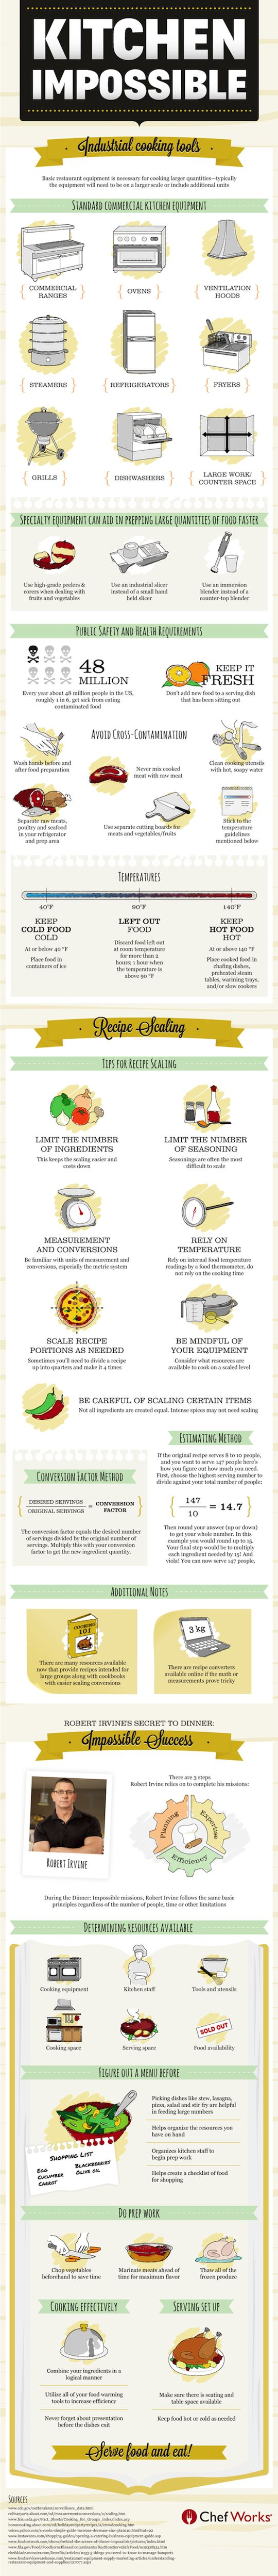 """Chef Robert Irvine is known for creating outstanding meals under the toughest of circumstances. Now, you can pick up some of his best tips with the following """"Kitchen Impossible"""" infographic!"""